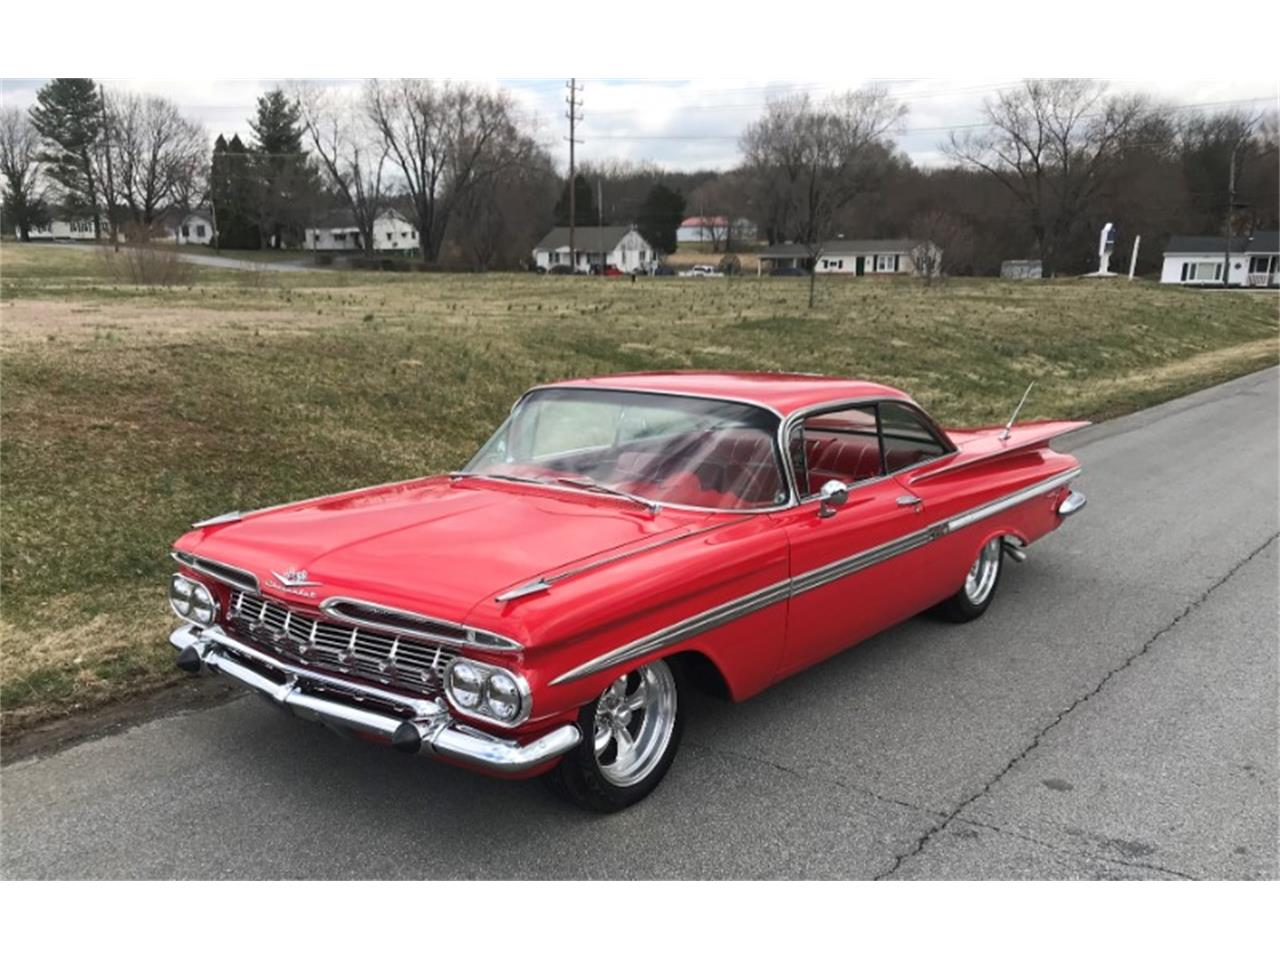 1959 Chevrolet Impala (CC-1269464) for sale in Harpers Ferry, West Virginia